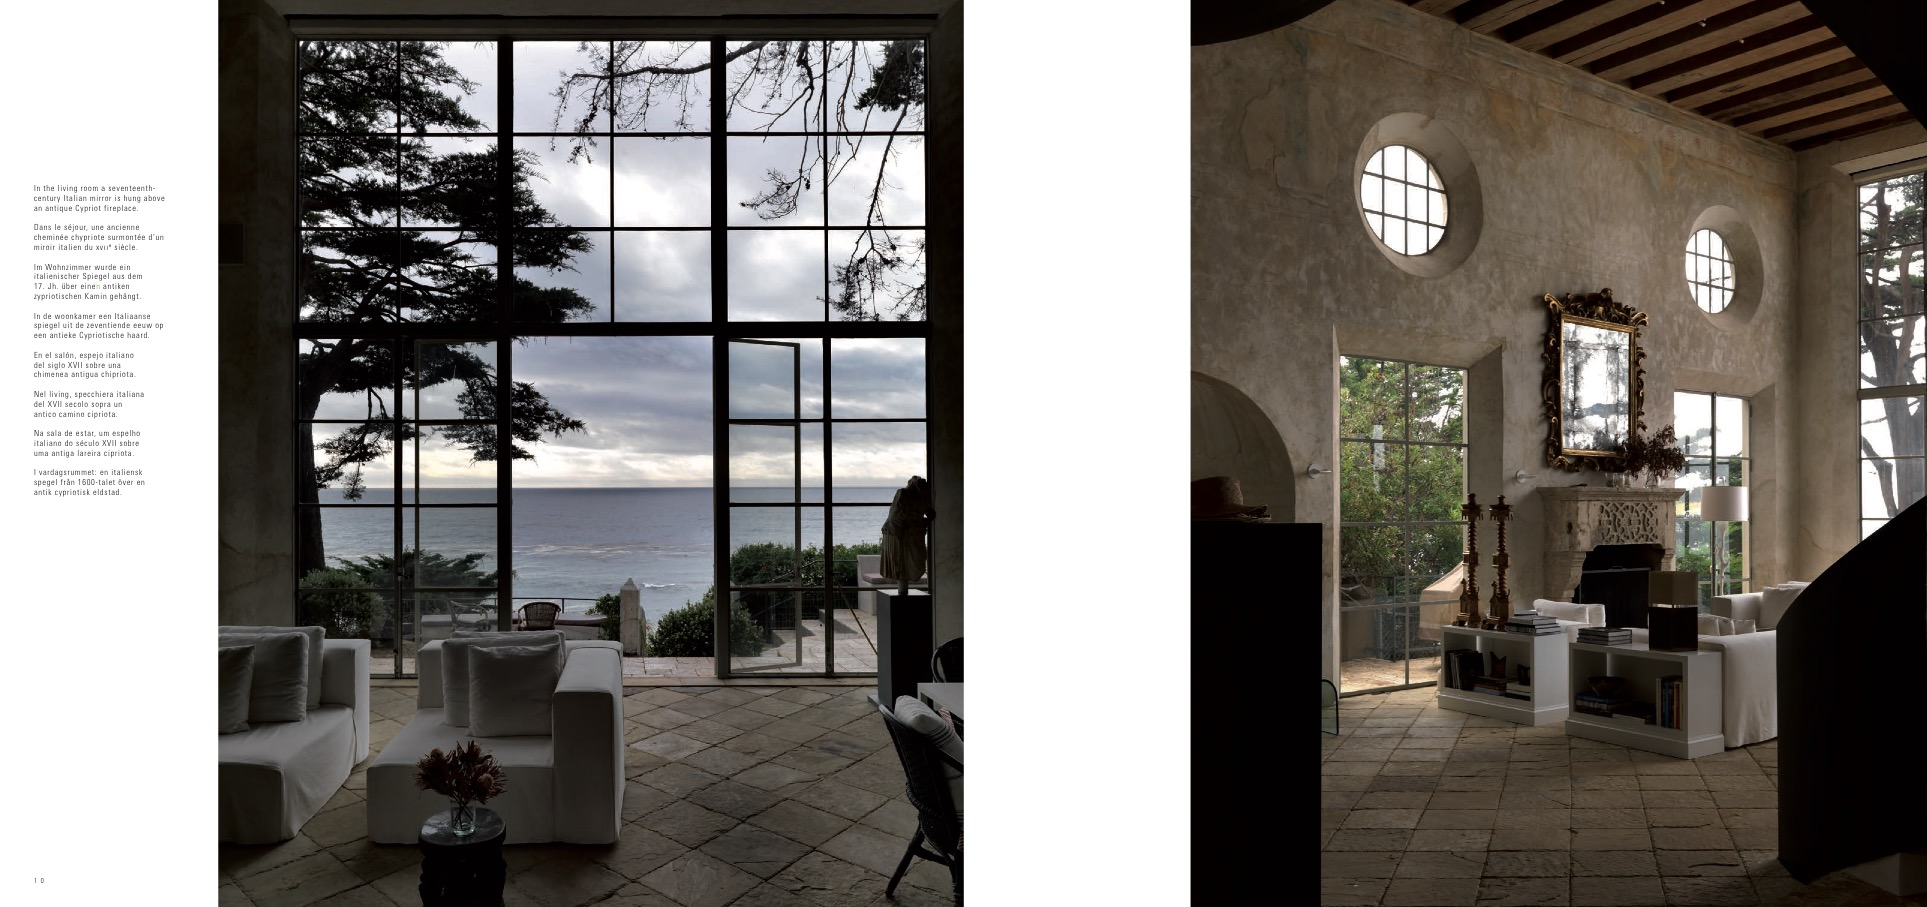 Casa Mare - Houses by the Sea N